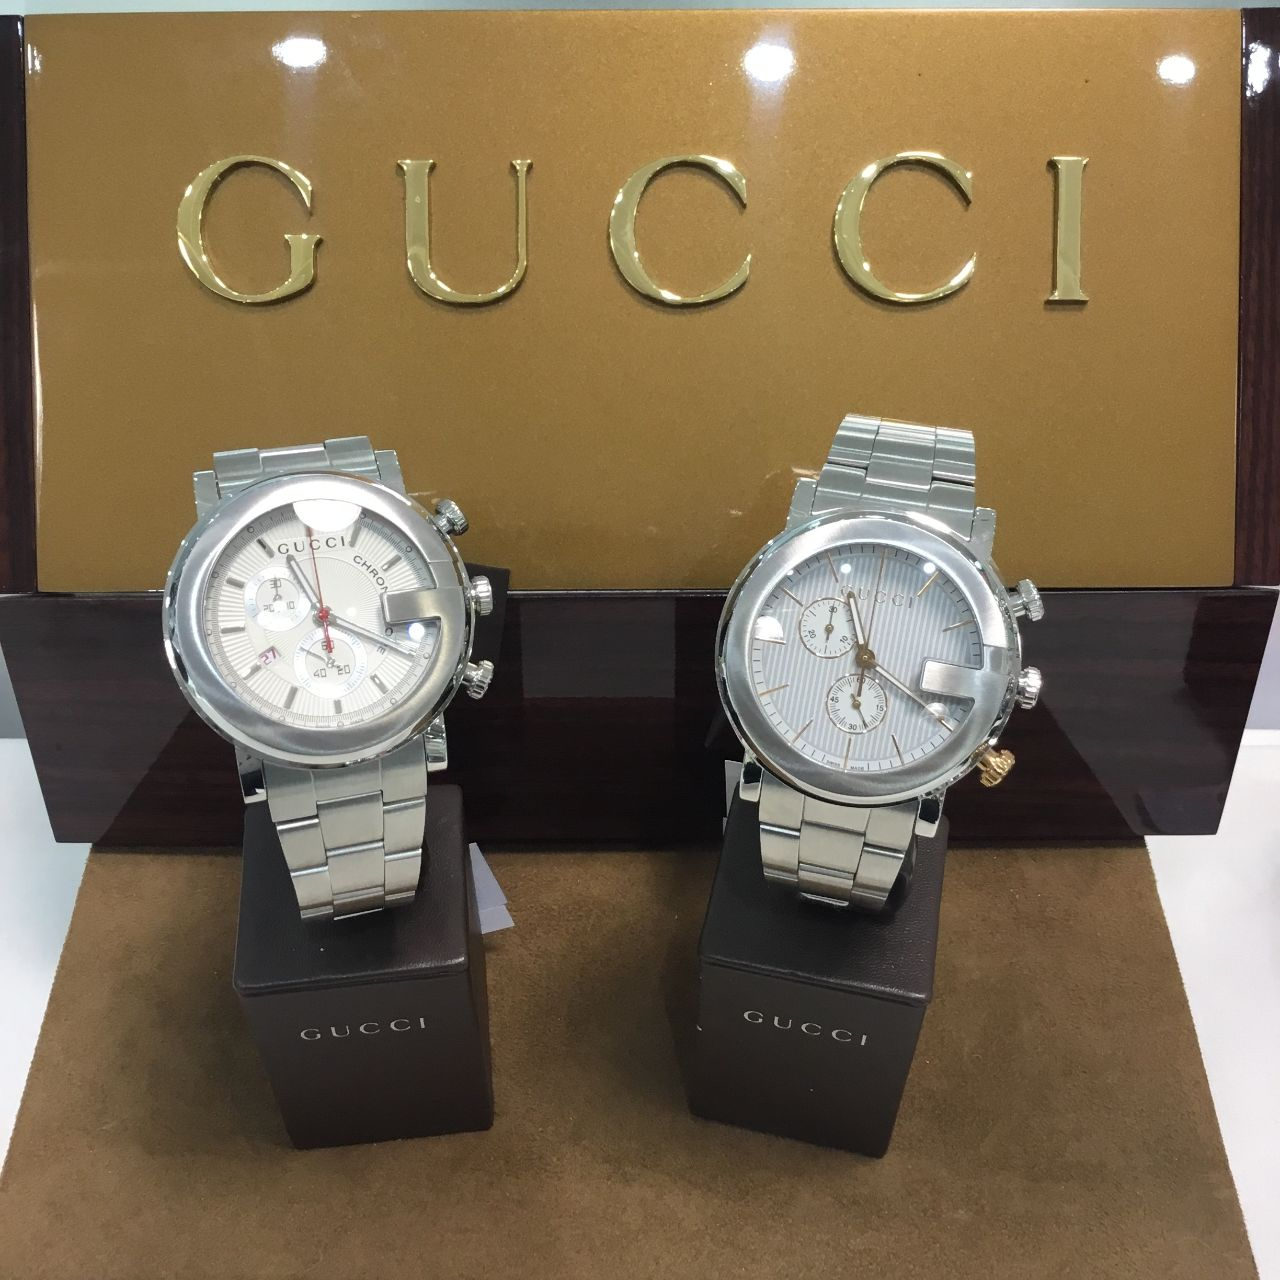 huge discount 9261e 61dc9 GUCCI時計が50%off! | ASBee FORUM イオンモール宇城店 | G ...